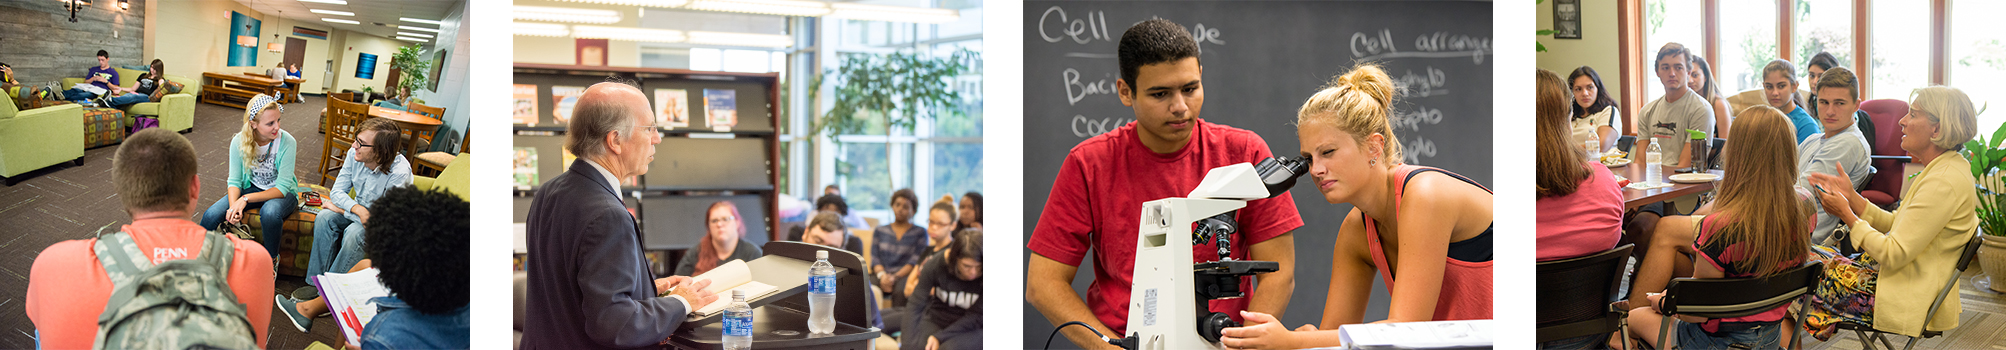 Photos of students in classroom and other academic settings.